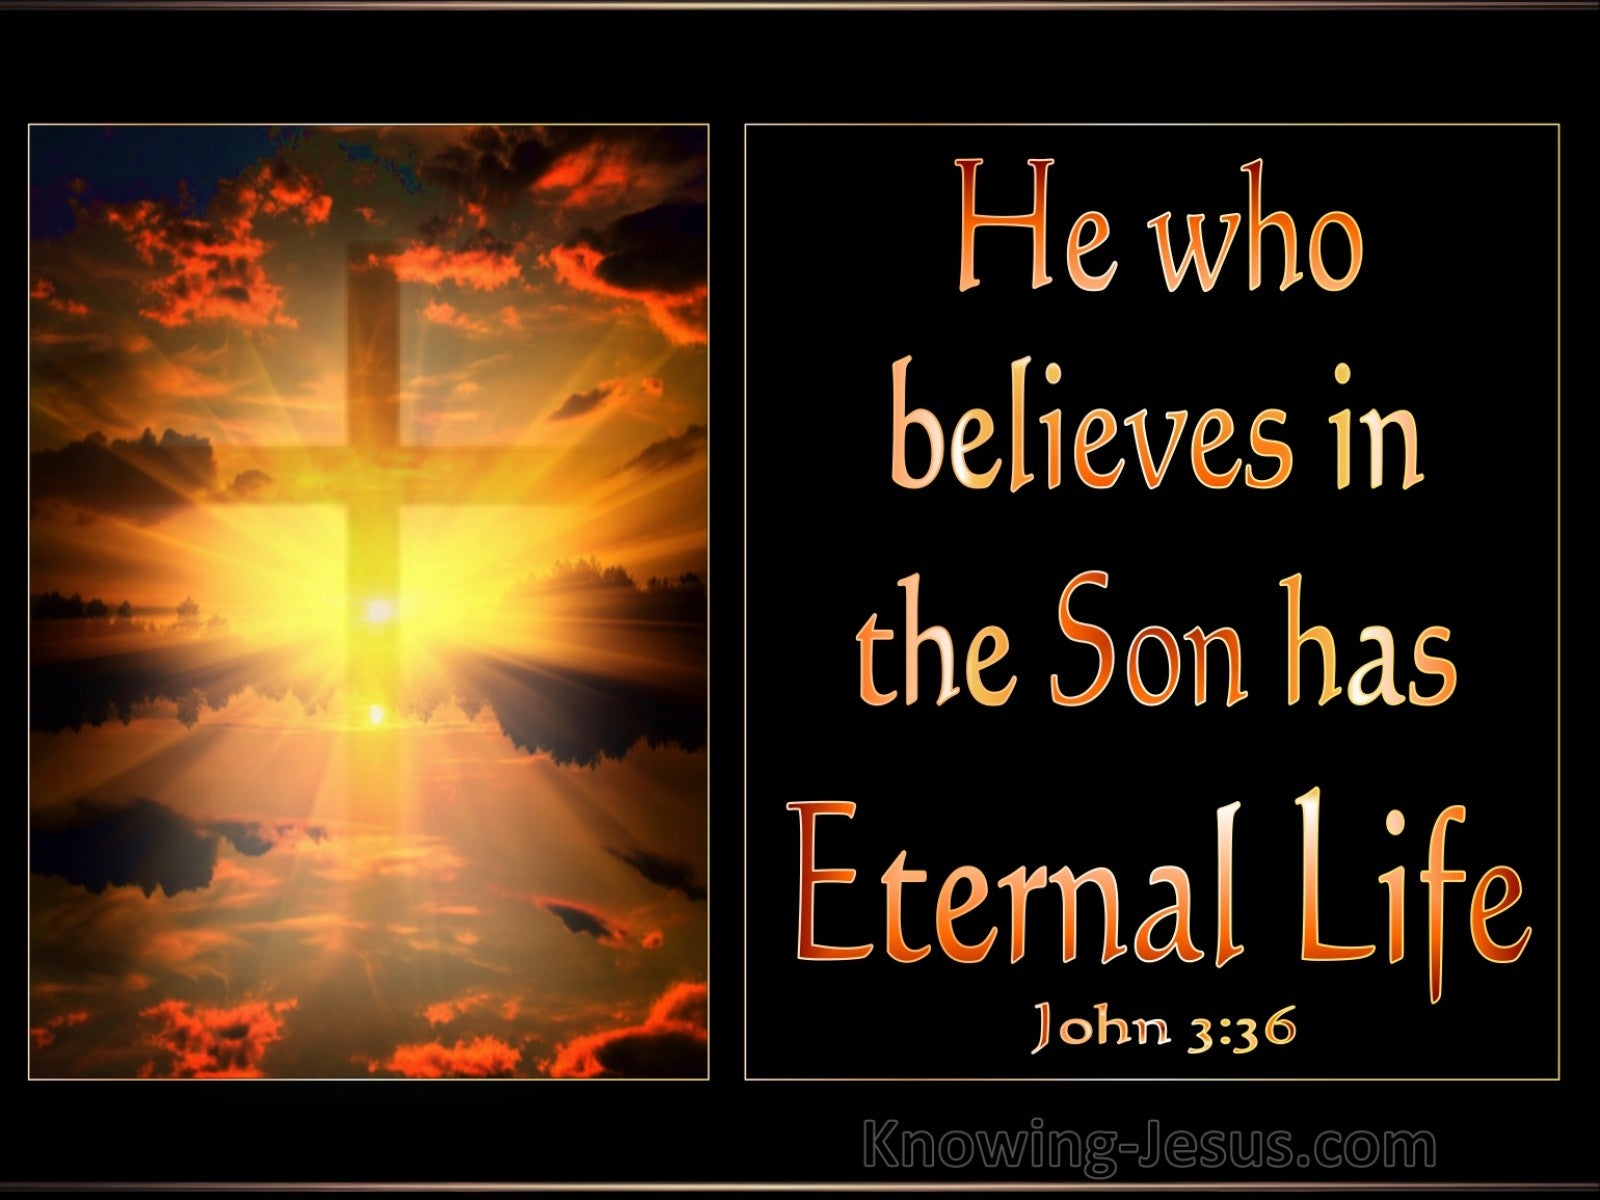 What Does John 3:36 Mean?